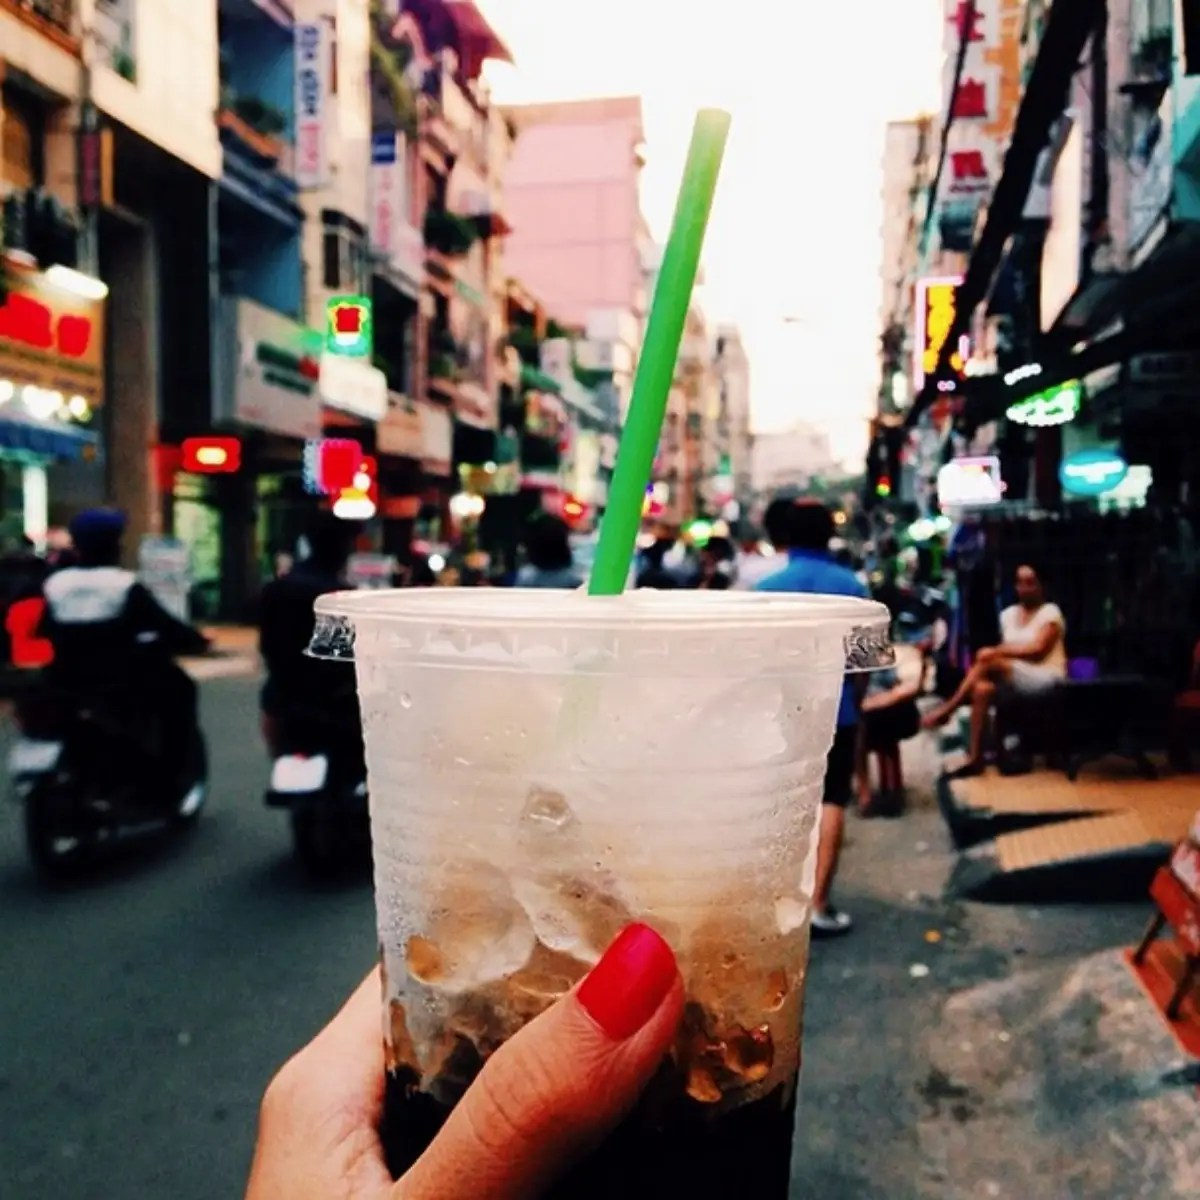 Vietnamese Coffee in Ho Chi Minh, where the motorcycles will avoid you if you just cross the street confidently.